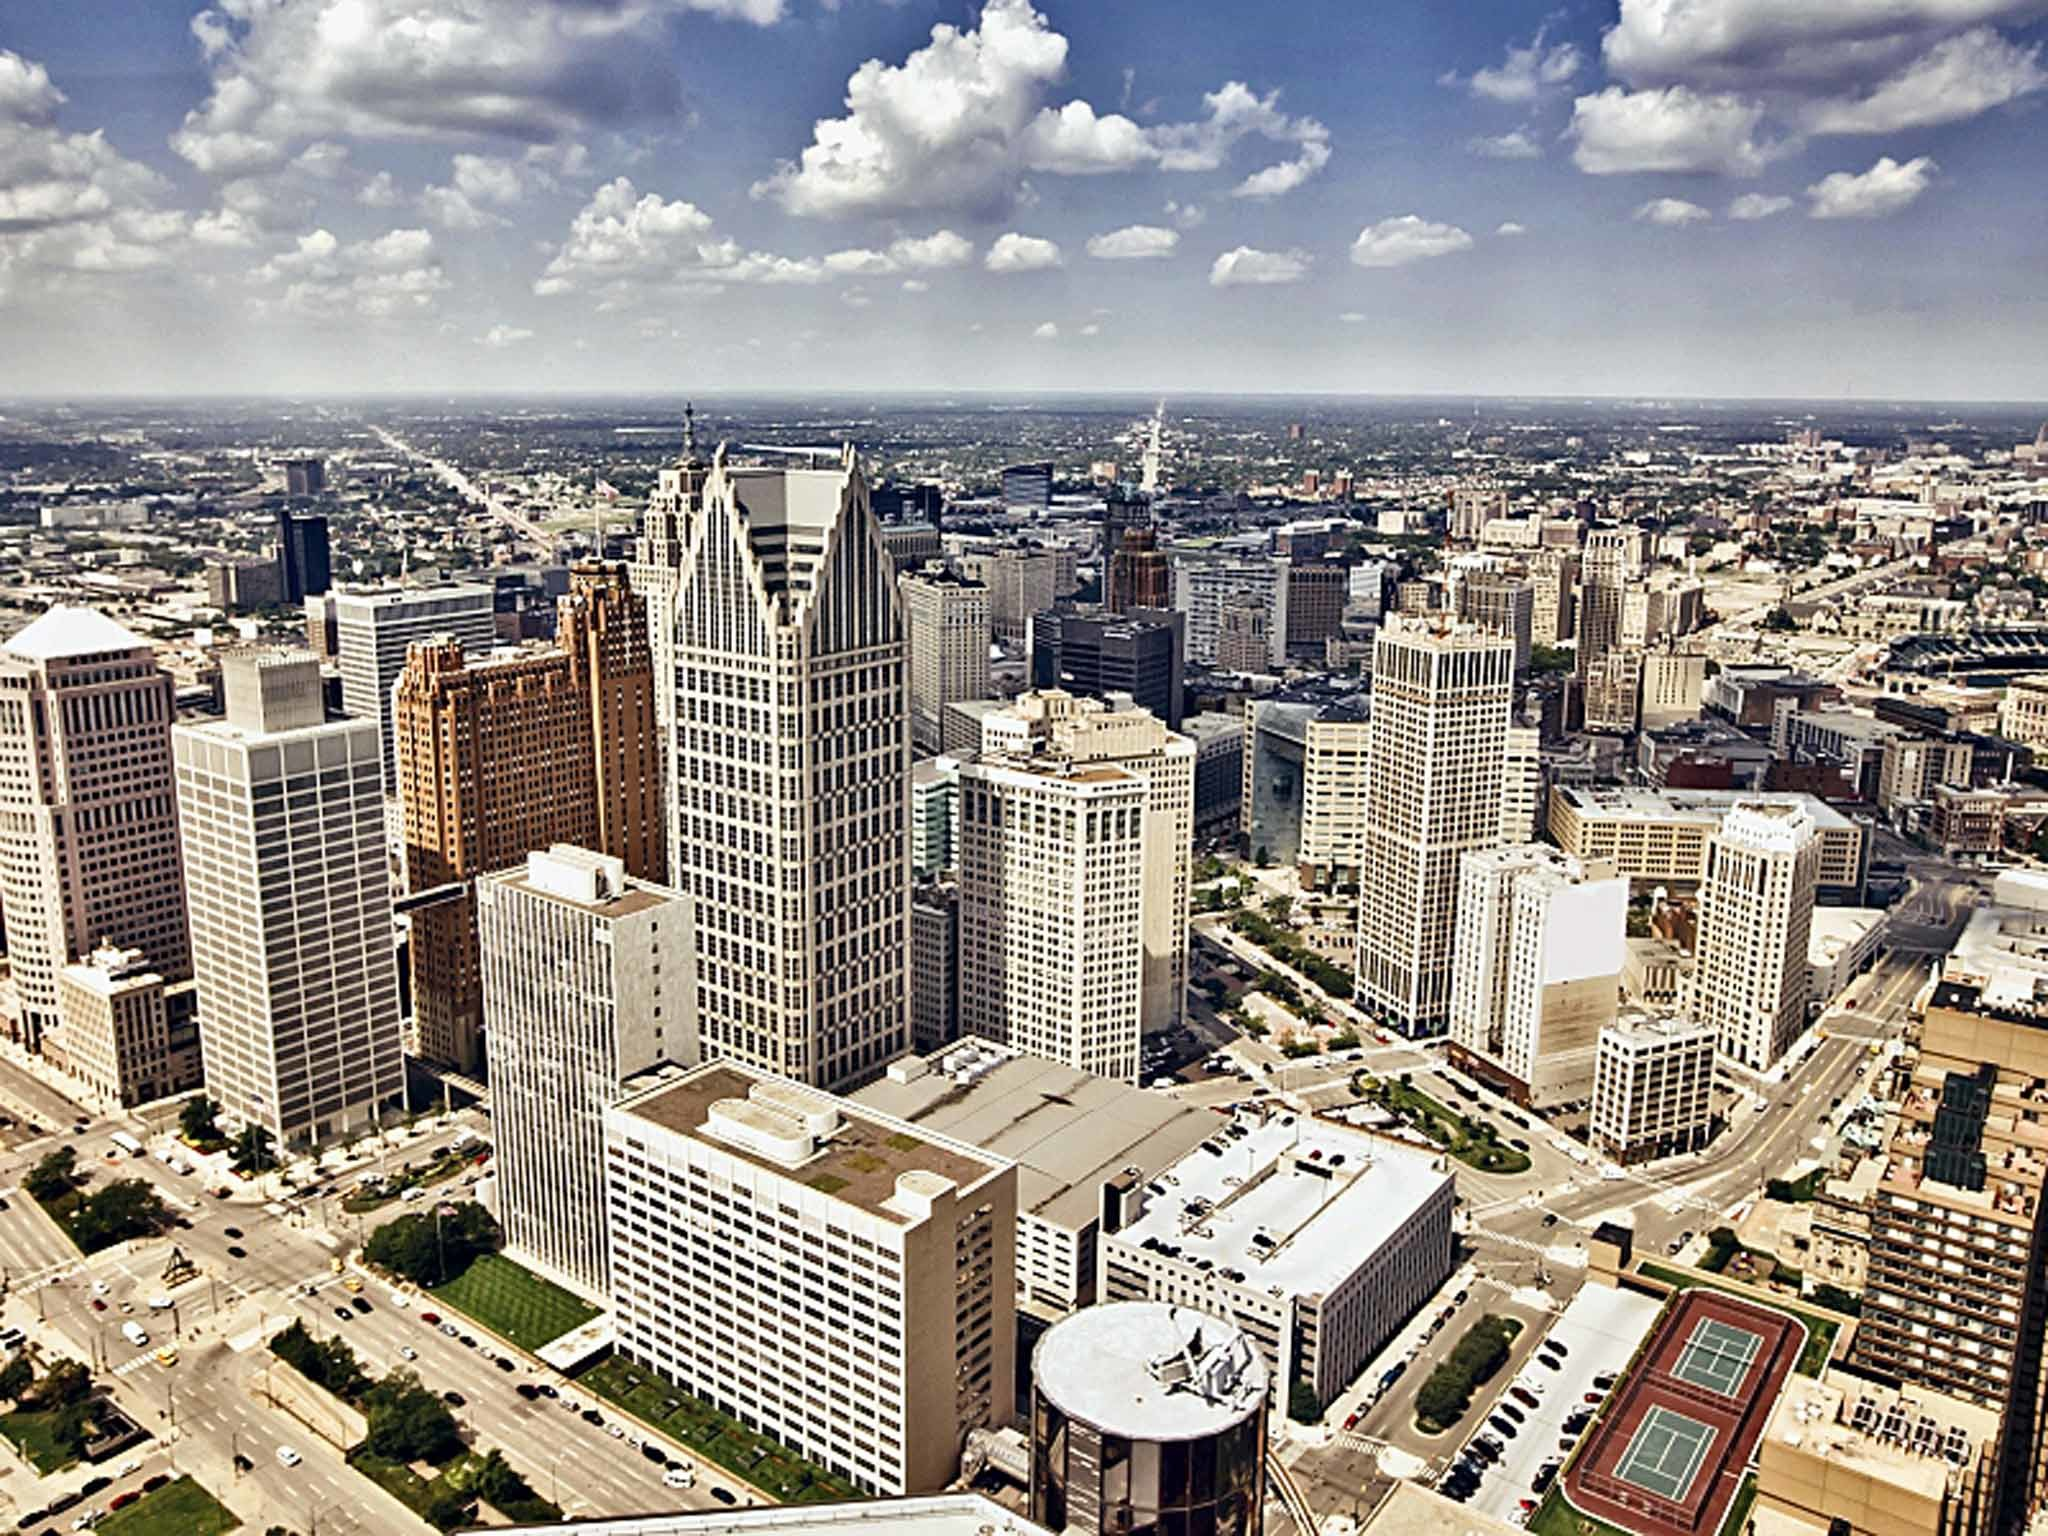 Res: 2048x1536, Detroit travel tips: Where to go and what to see in 48 hours | The  Independent